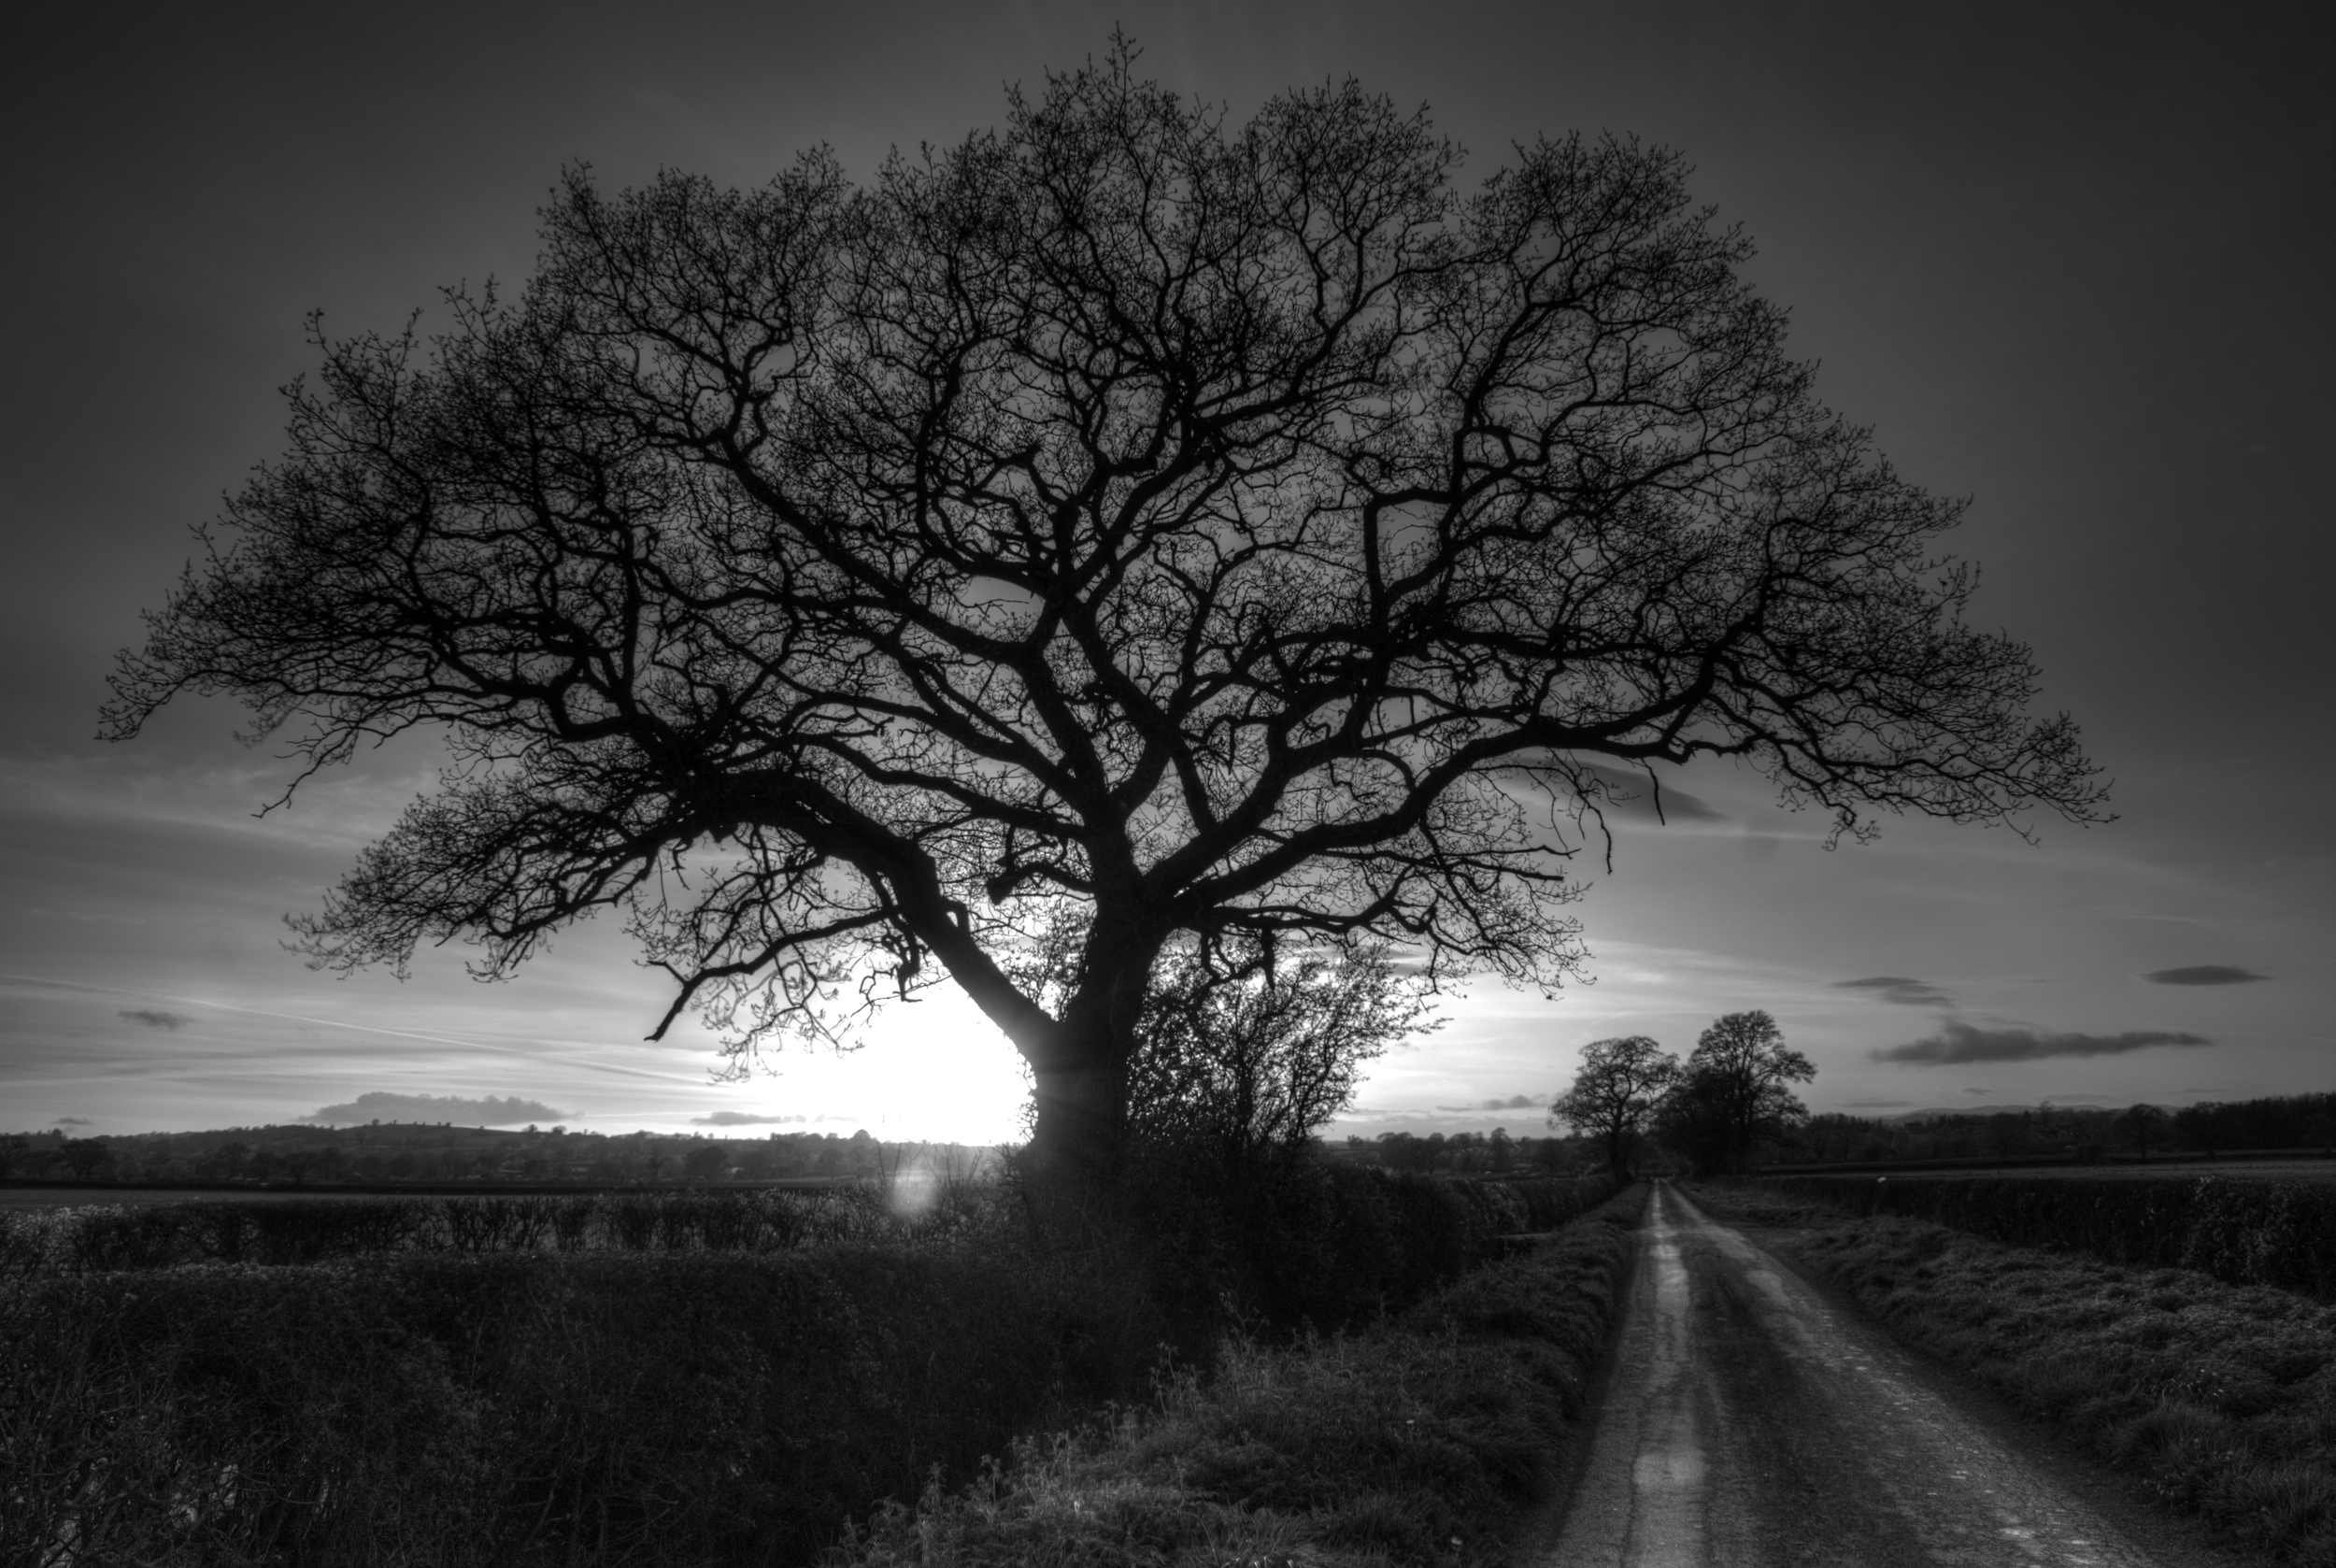 The sun sets behind the lonely old tree